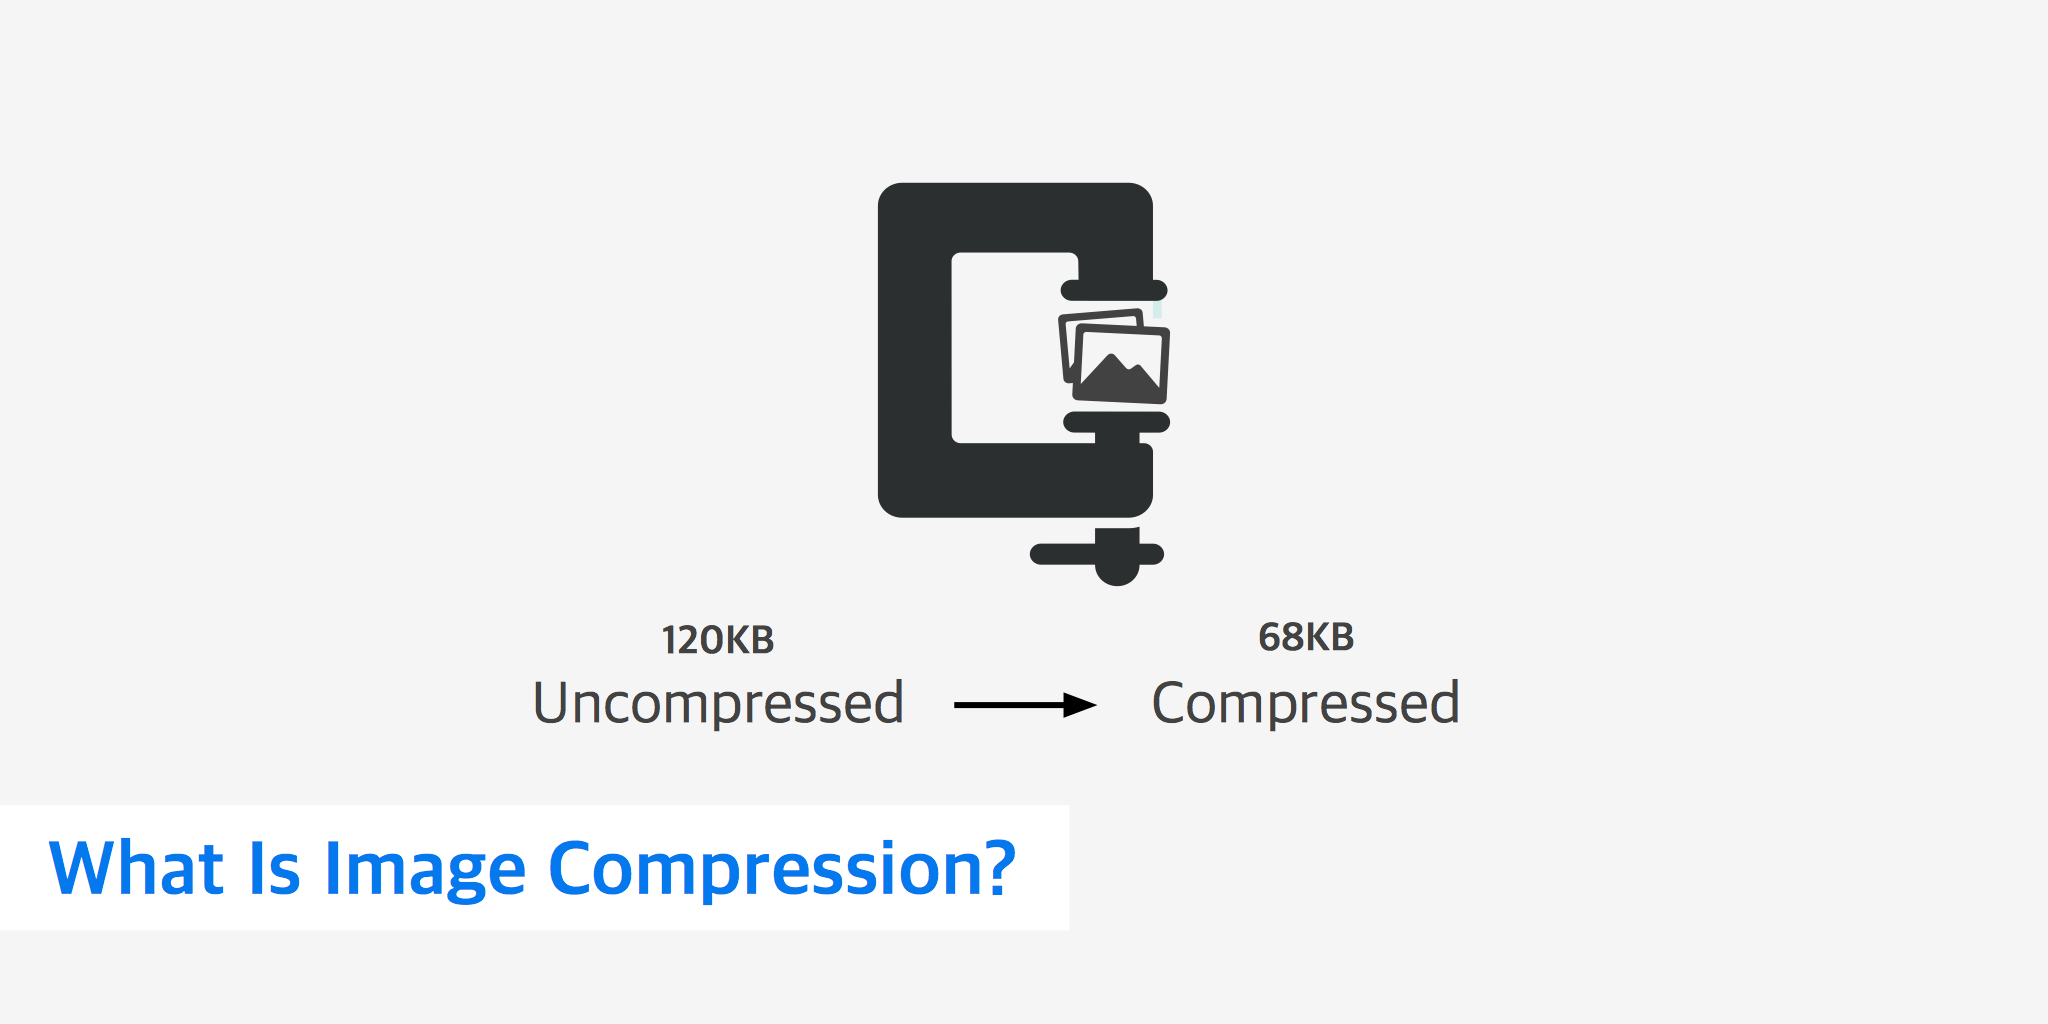 What Is Image Compression?